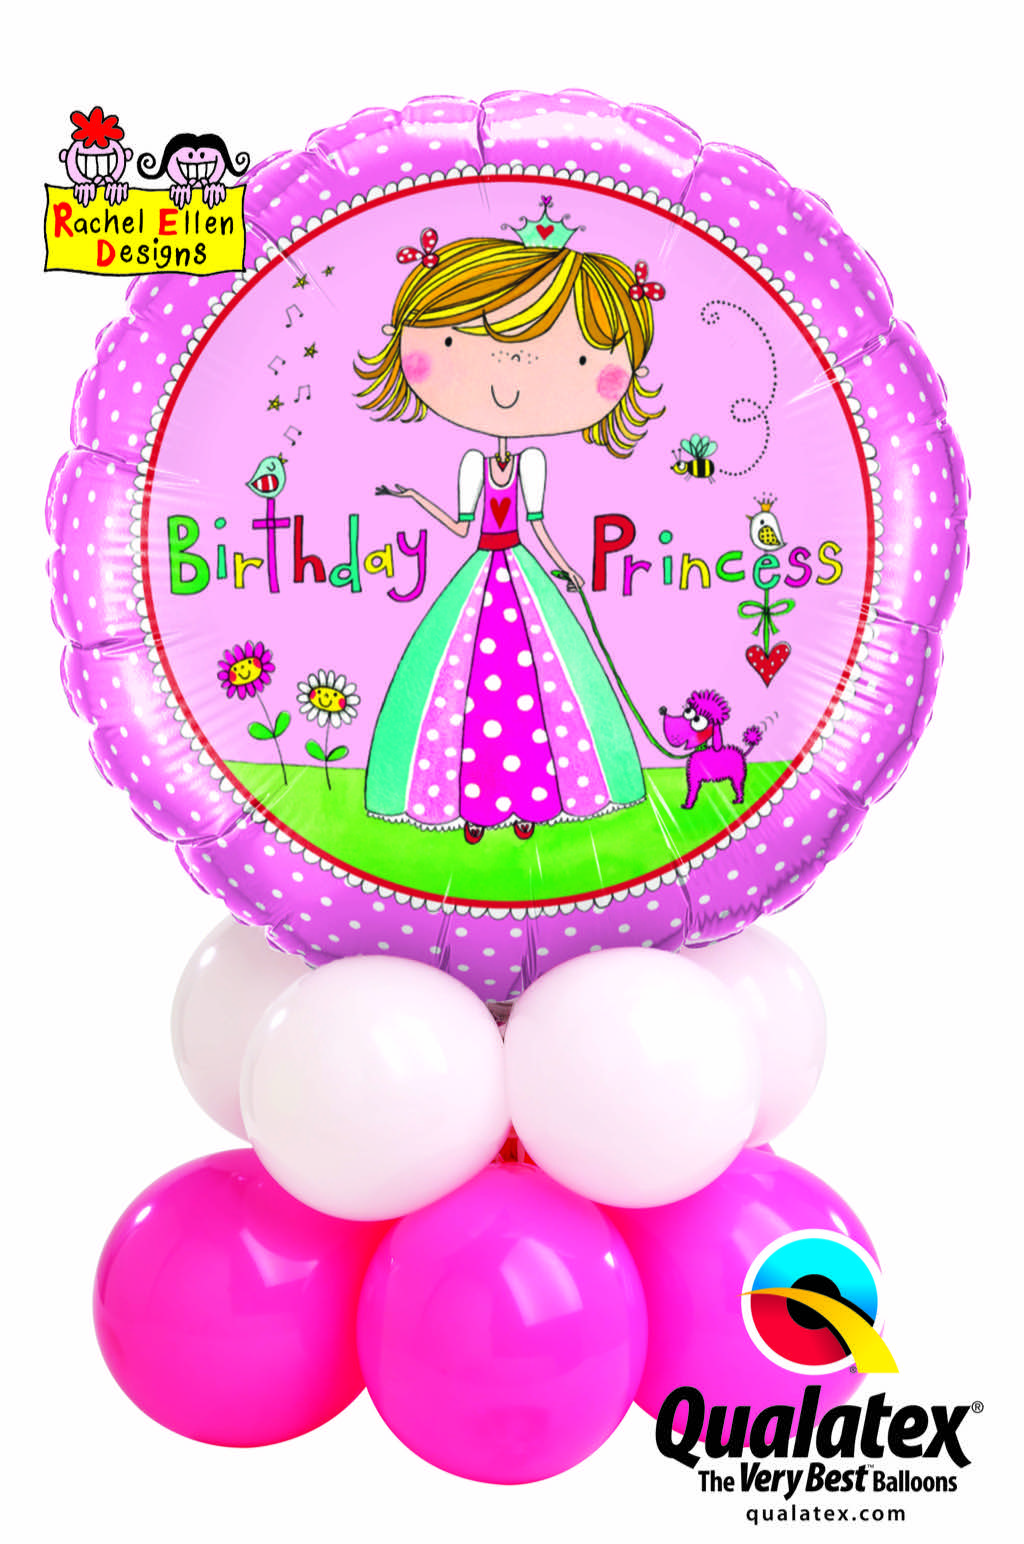 Rachel Ellen Birthday Princess Mini